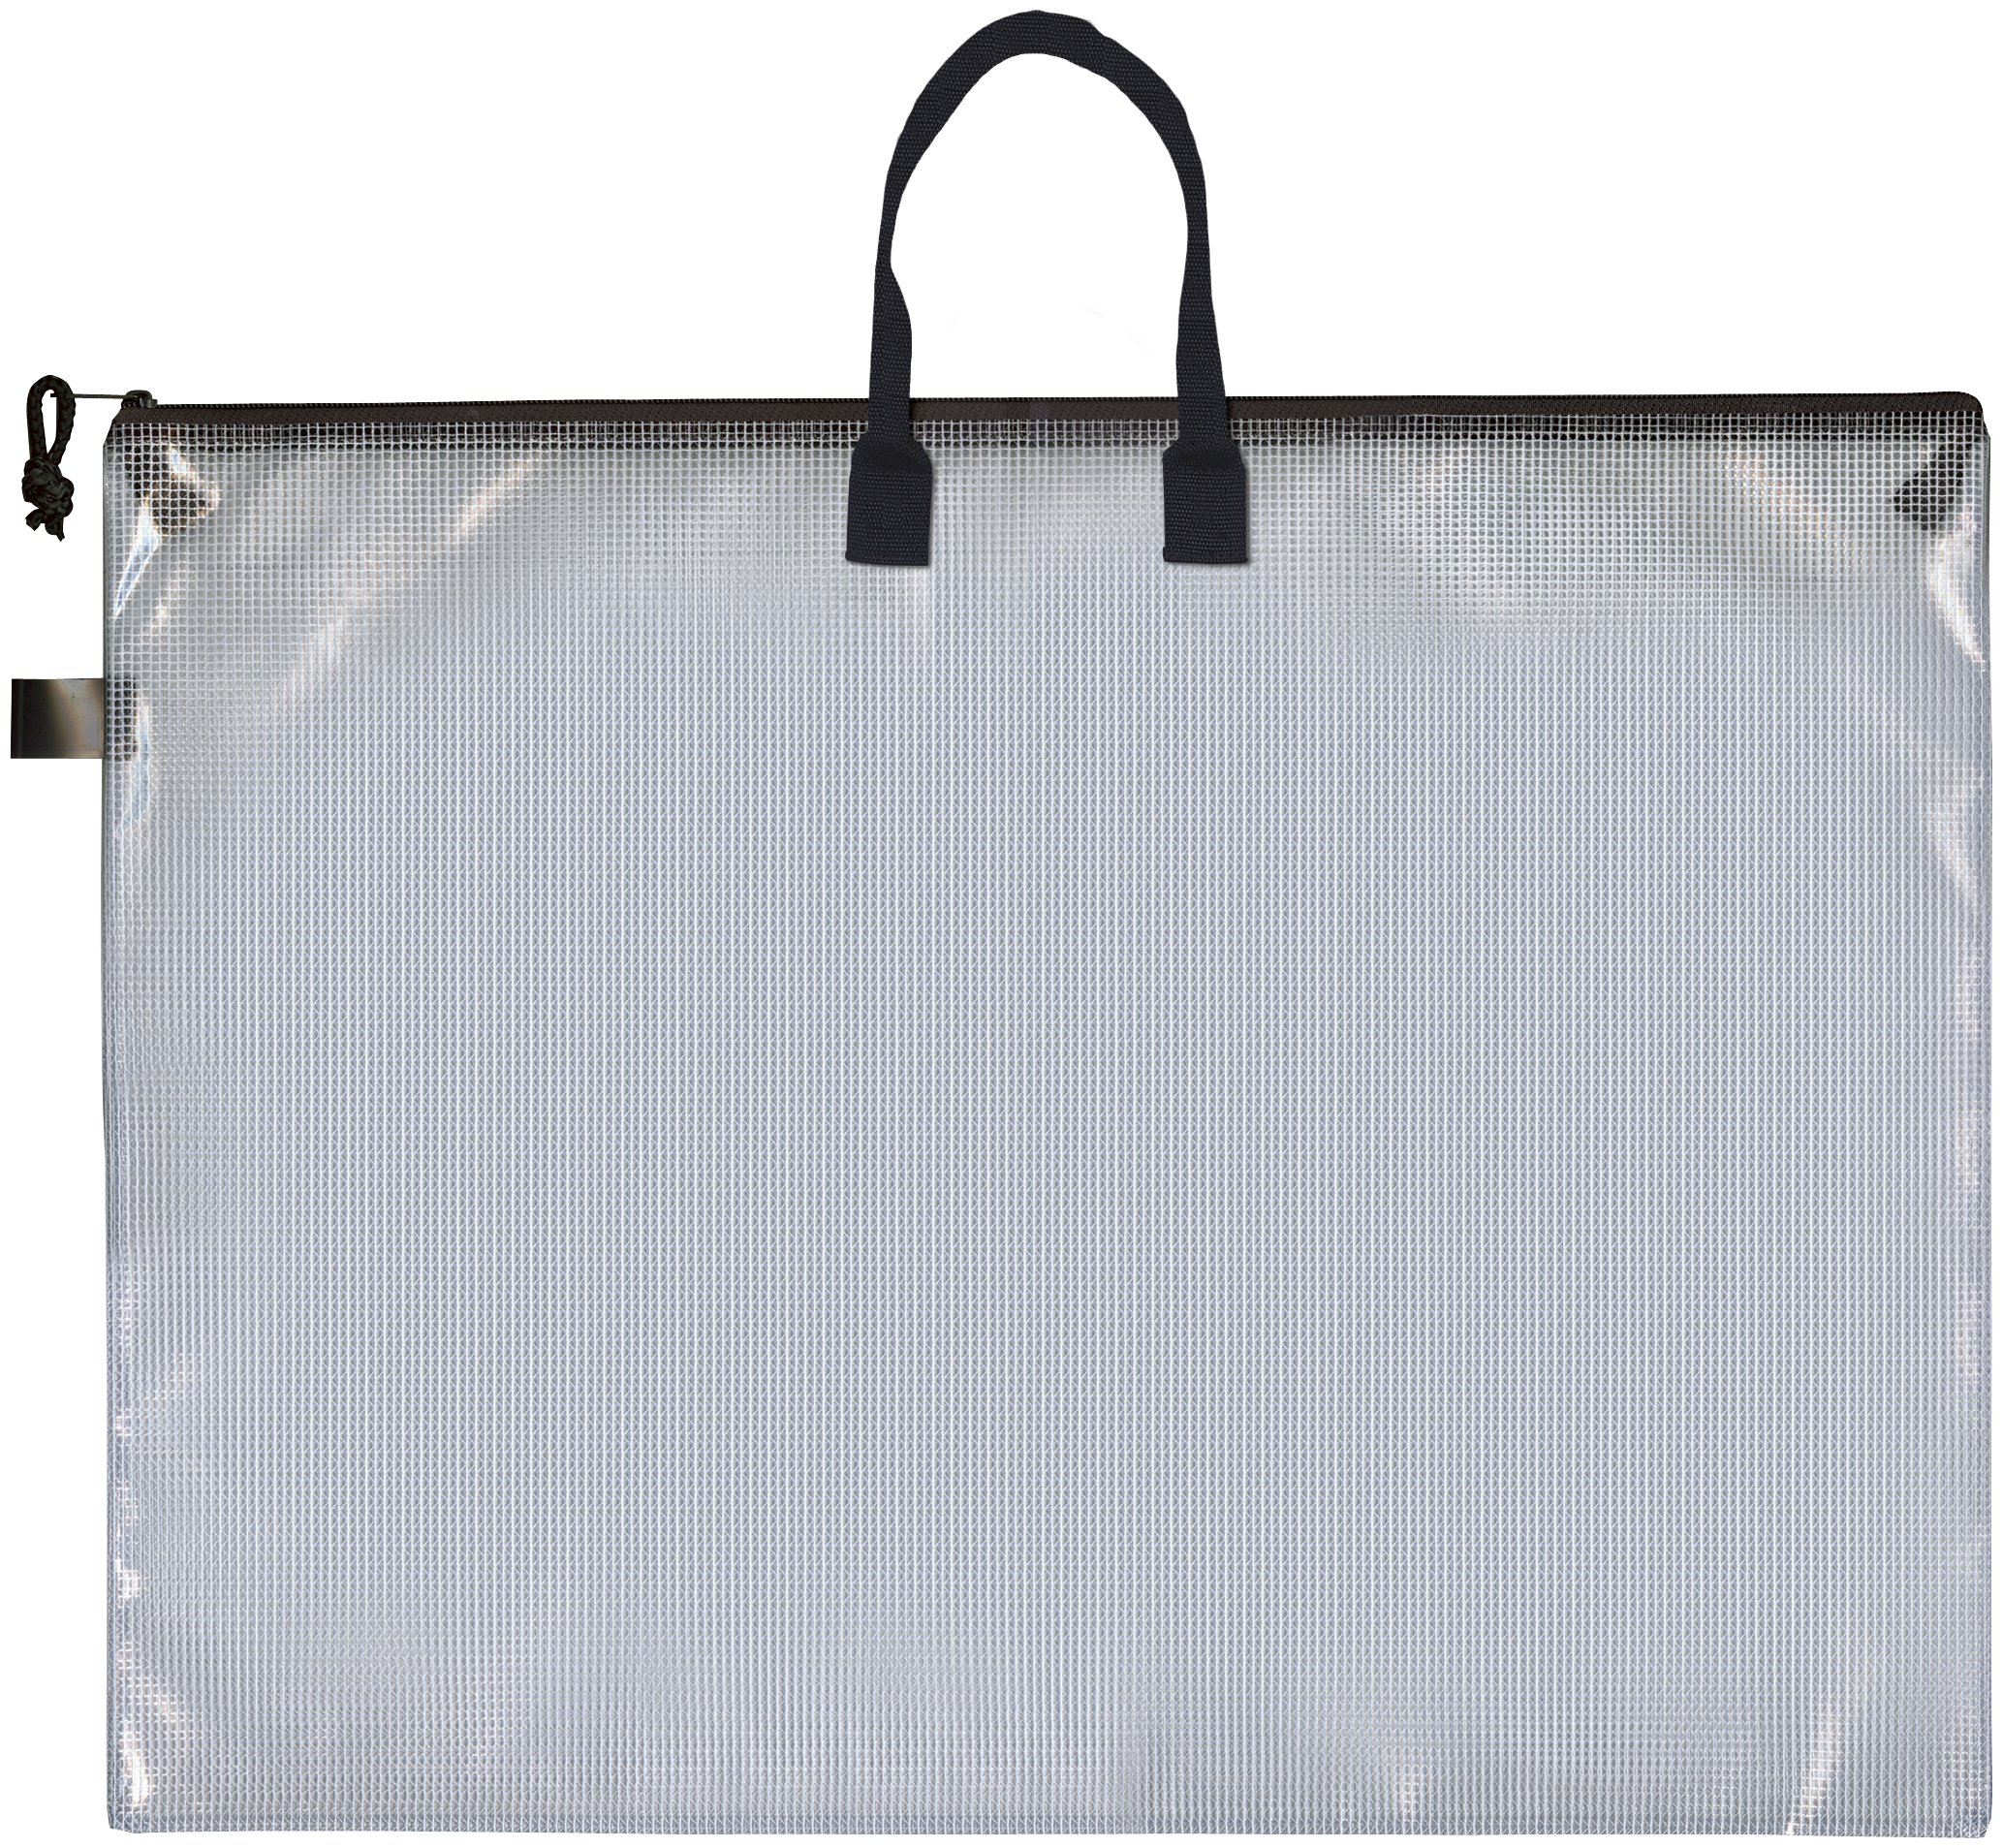 Galleon Pro Art Pro 7215h Mesh Vinyl Bag With Handle And